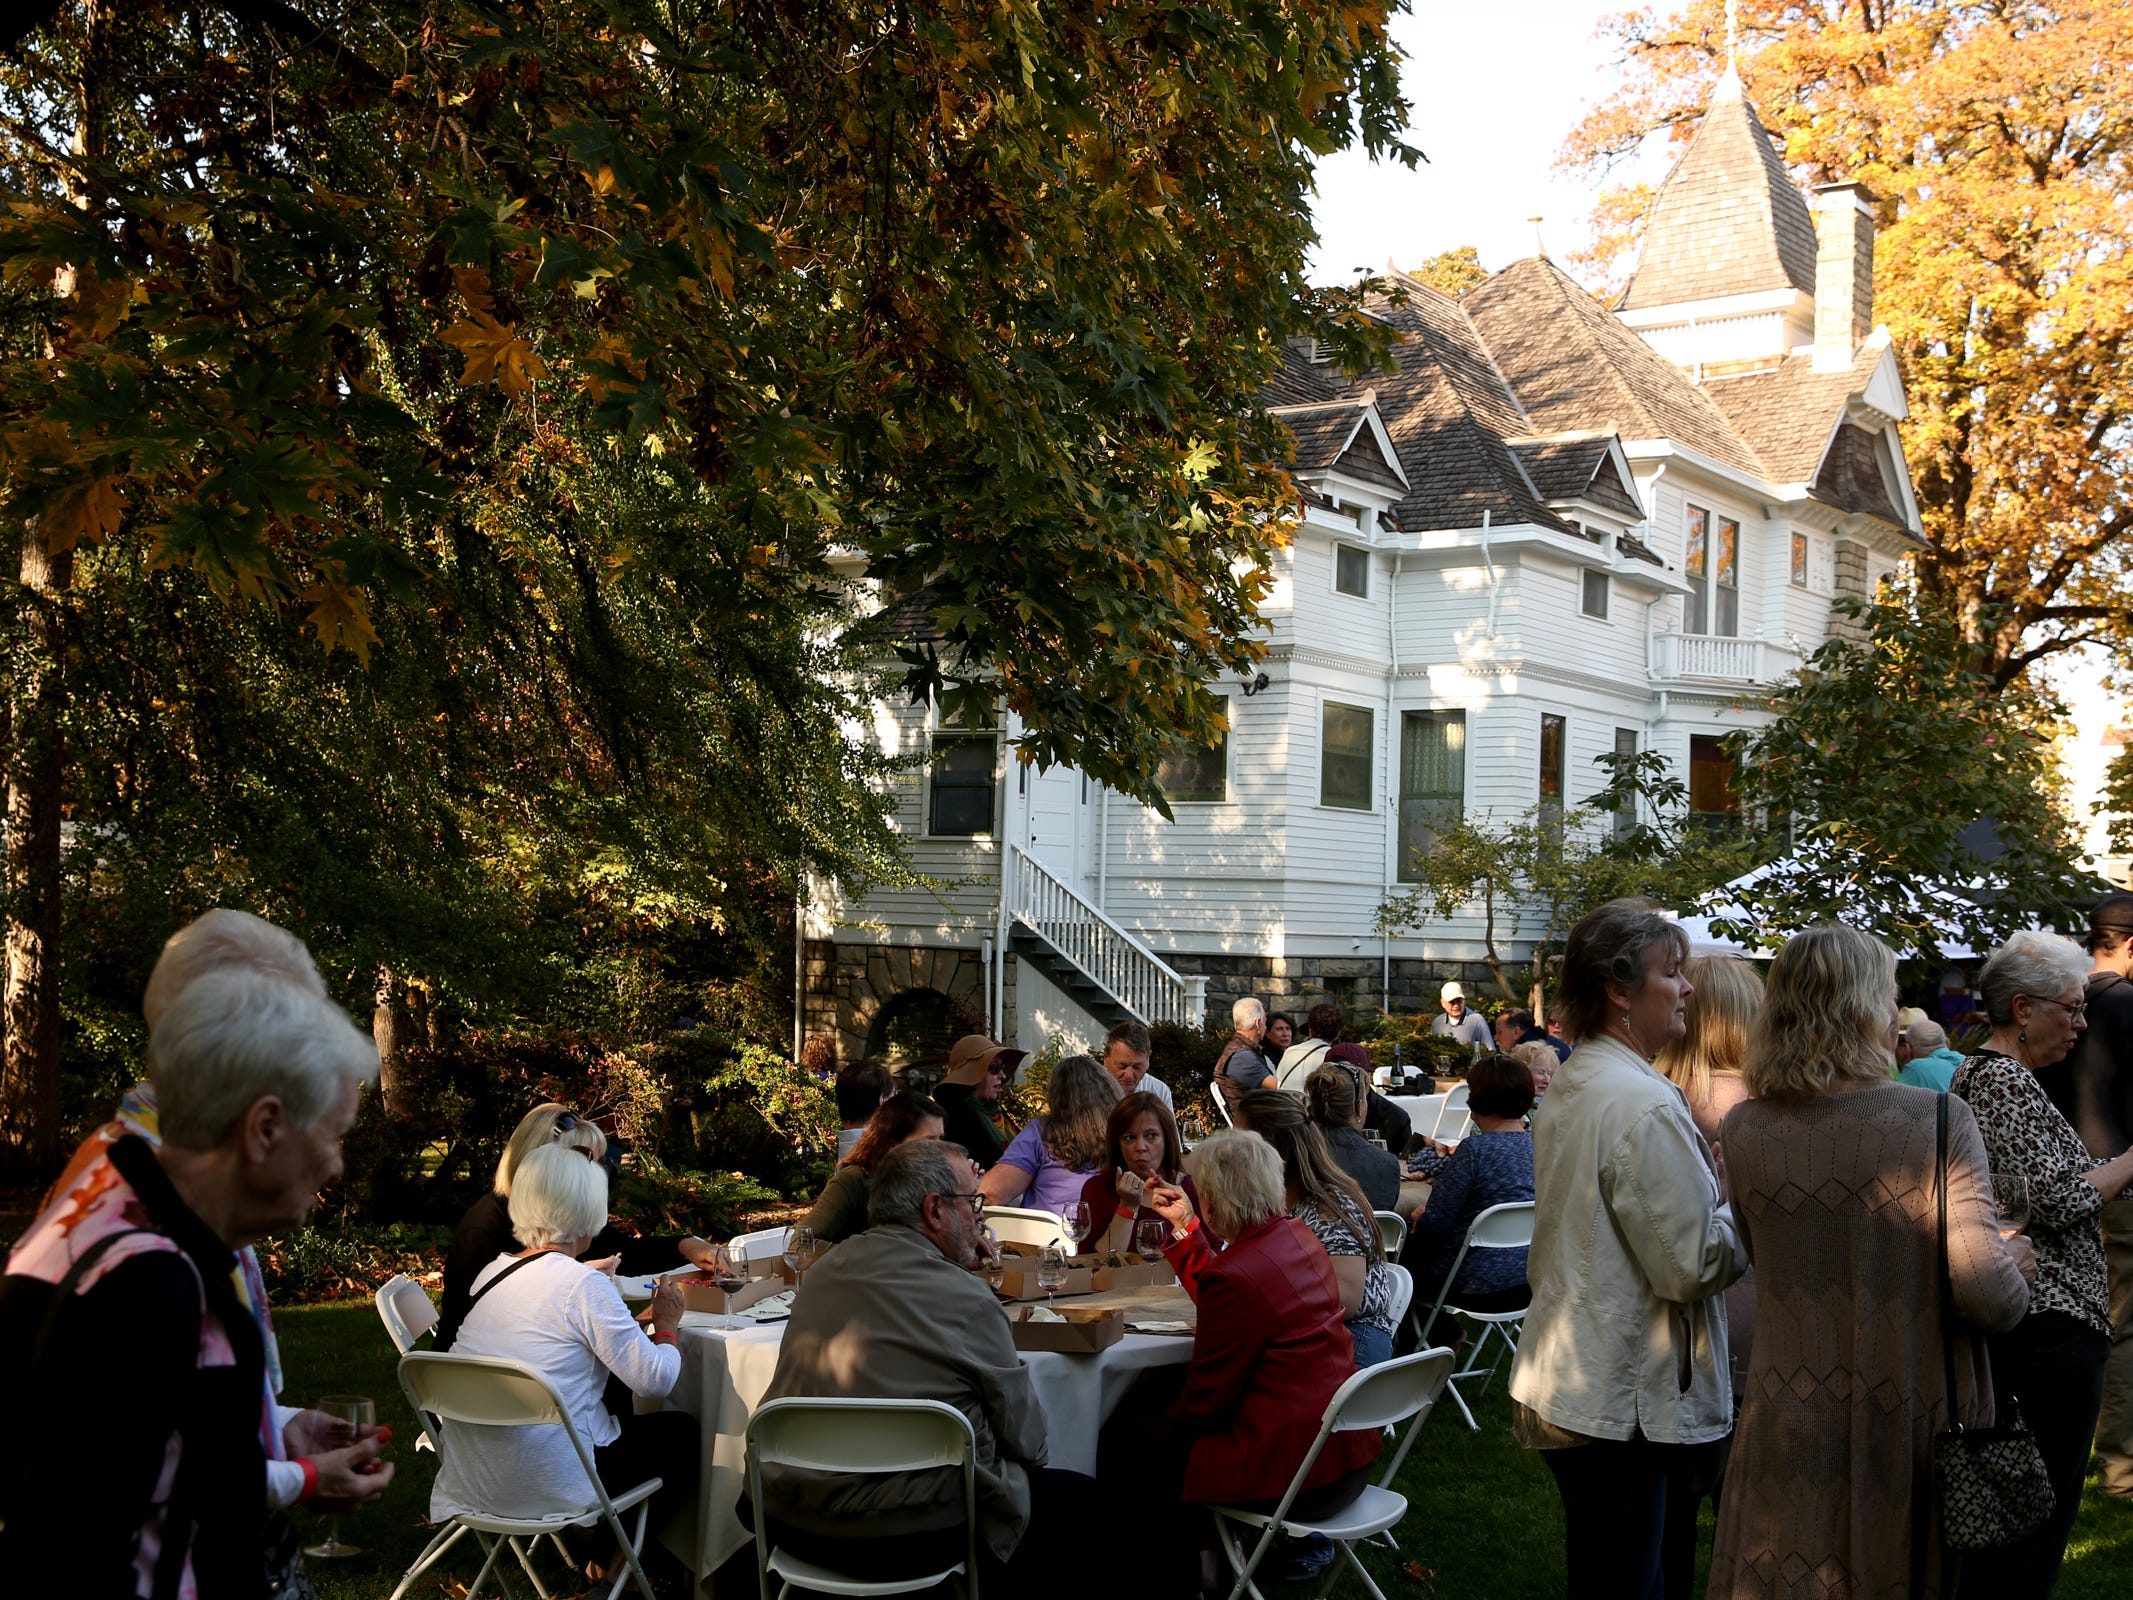 The Wine & Jazz Festival at Deepwood Museum & Gardens in Salem on Sunday, Oct. 21, 2018.